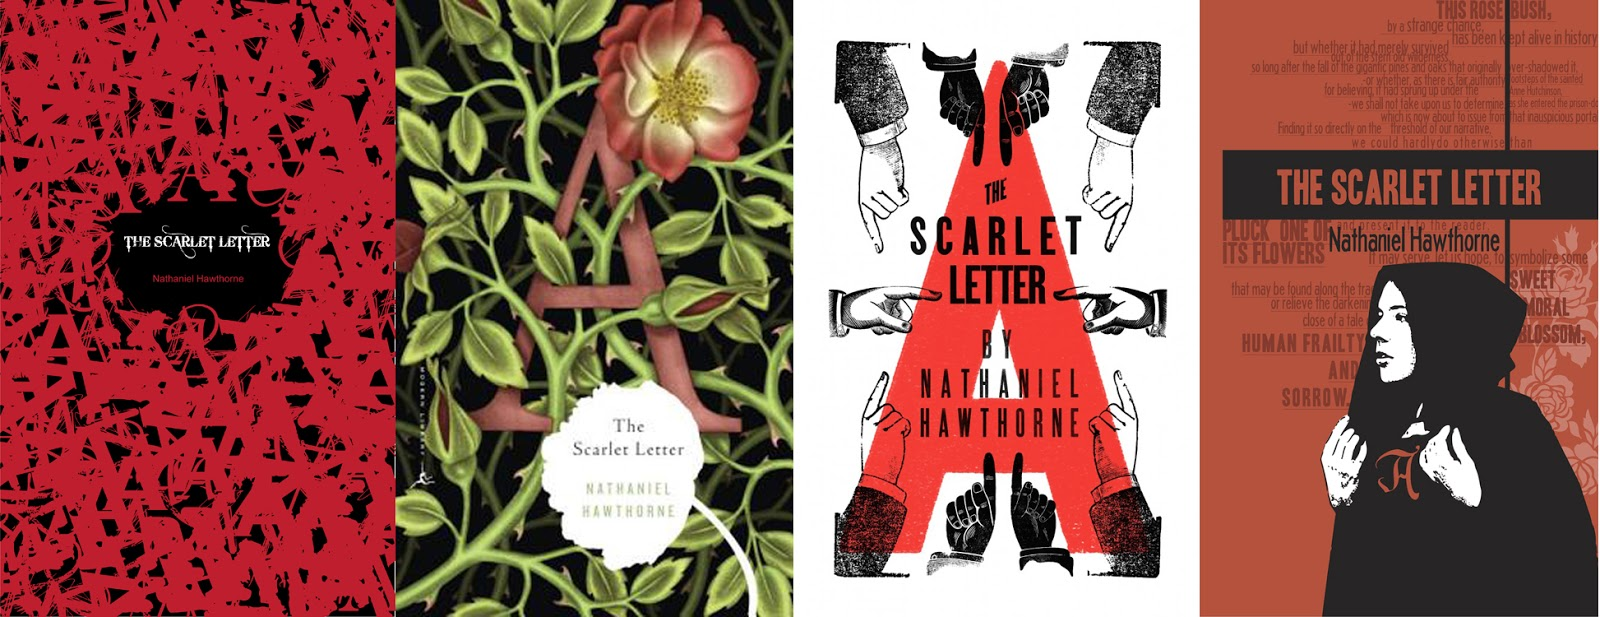 Essay, Research Paper: Scarlet Letter Influences